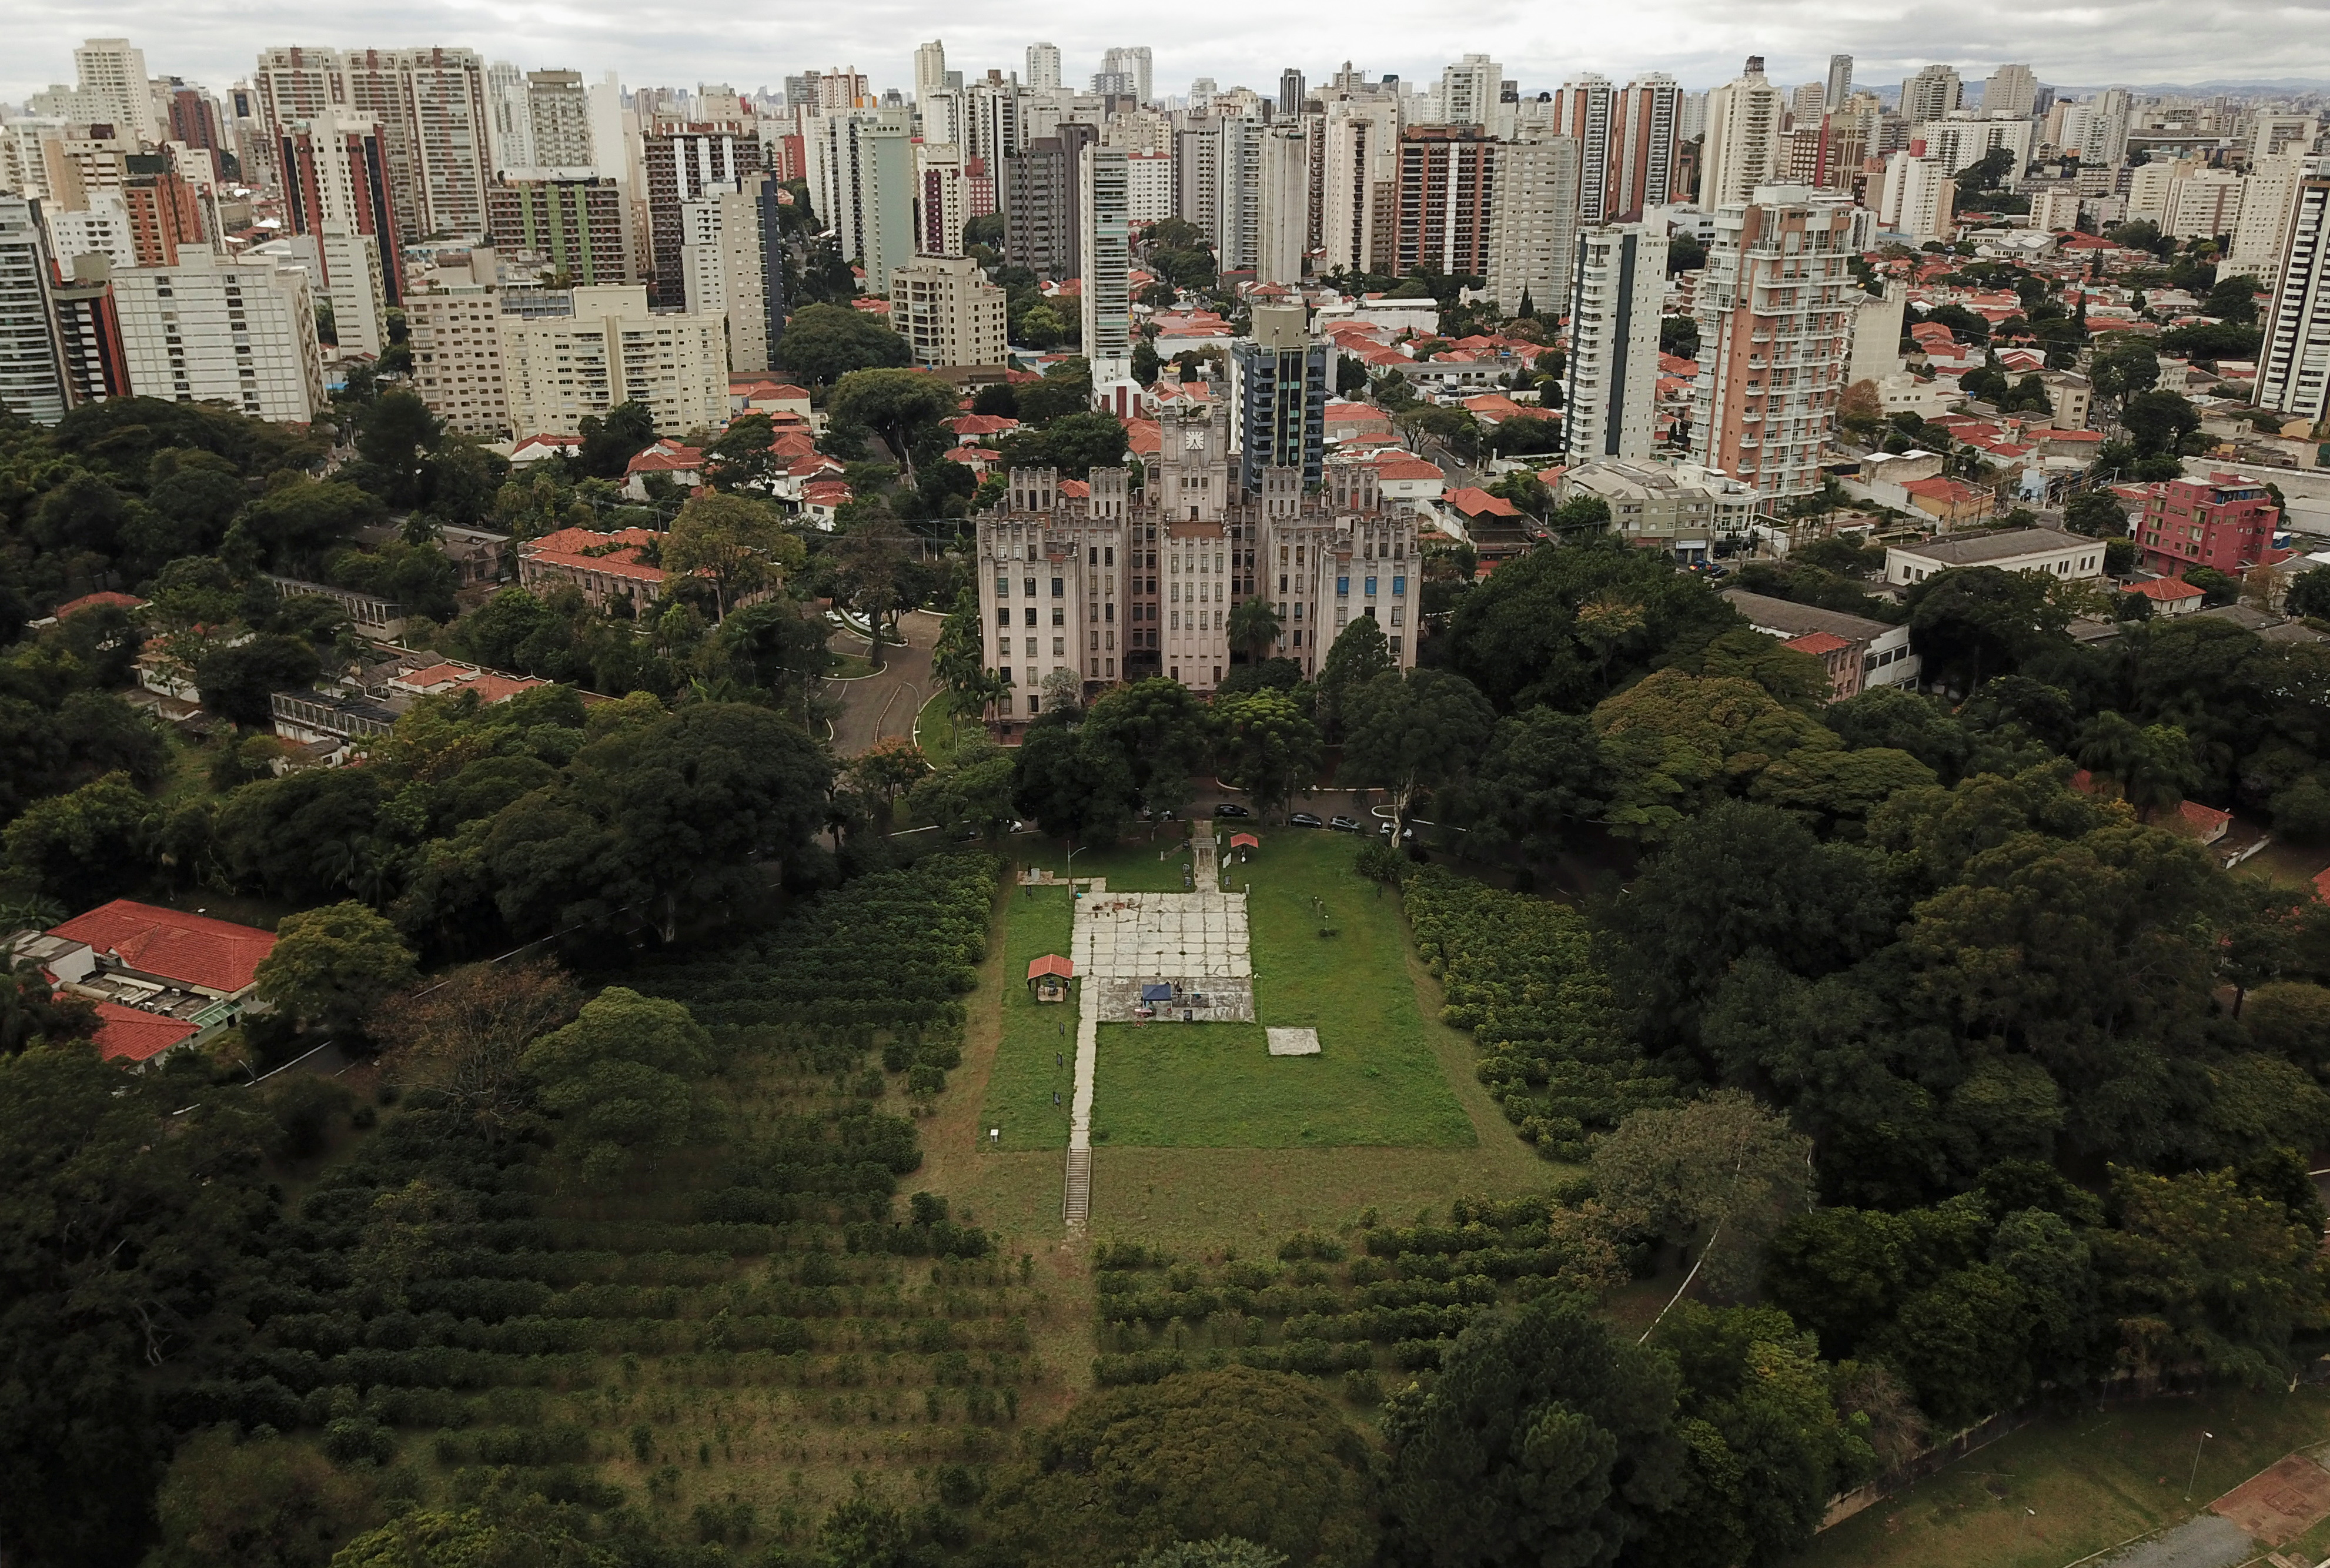 An aerial view of the Biological Institute coffee plantation in Sao Paulo, Brazil May 8, 2021. Picture taken with a drone. REUTERS/Amanda Perobelli